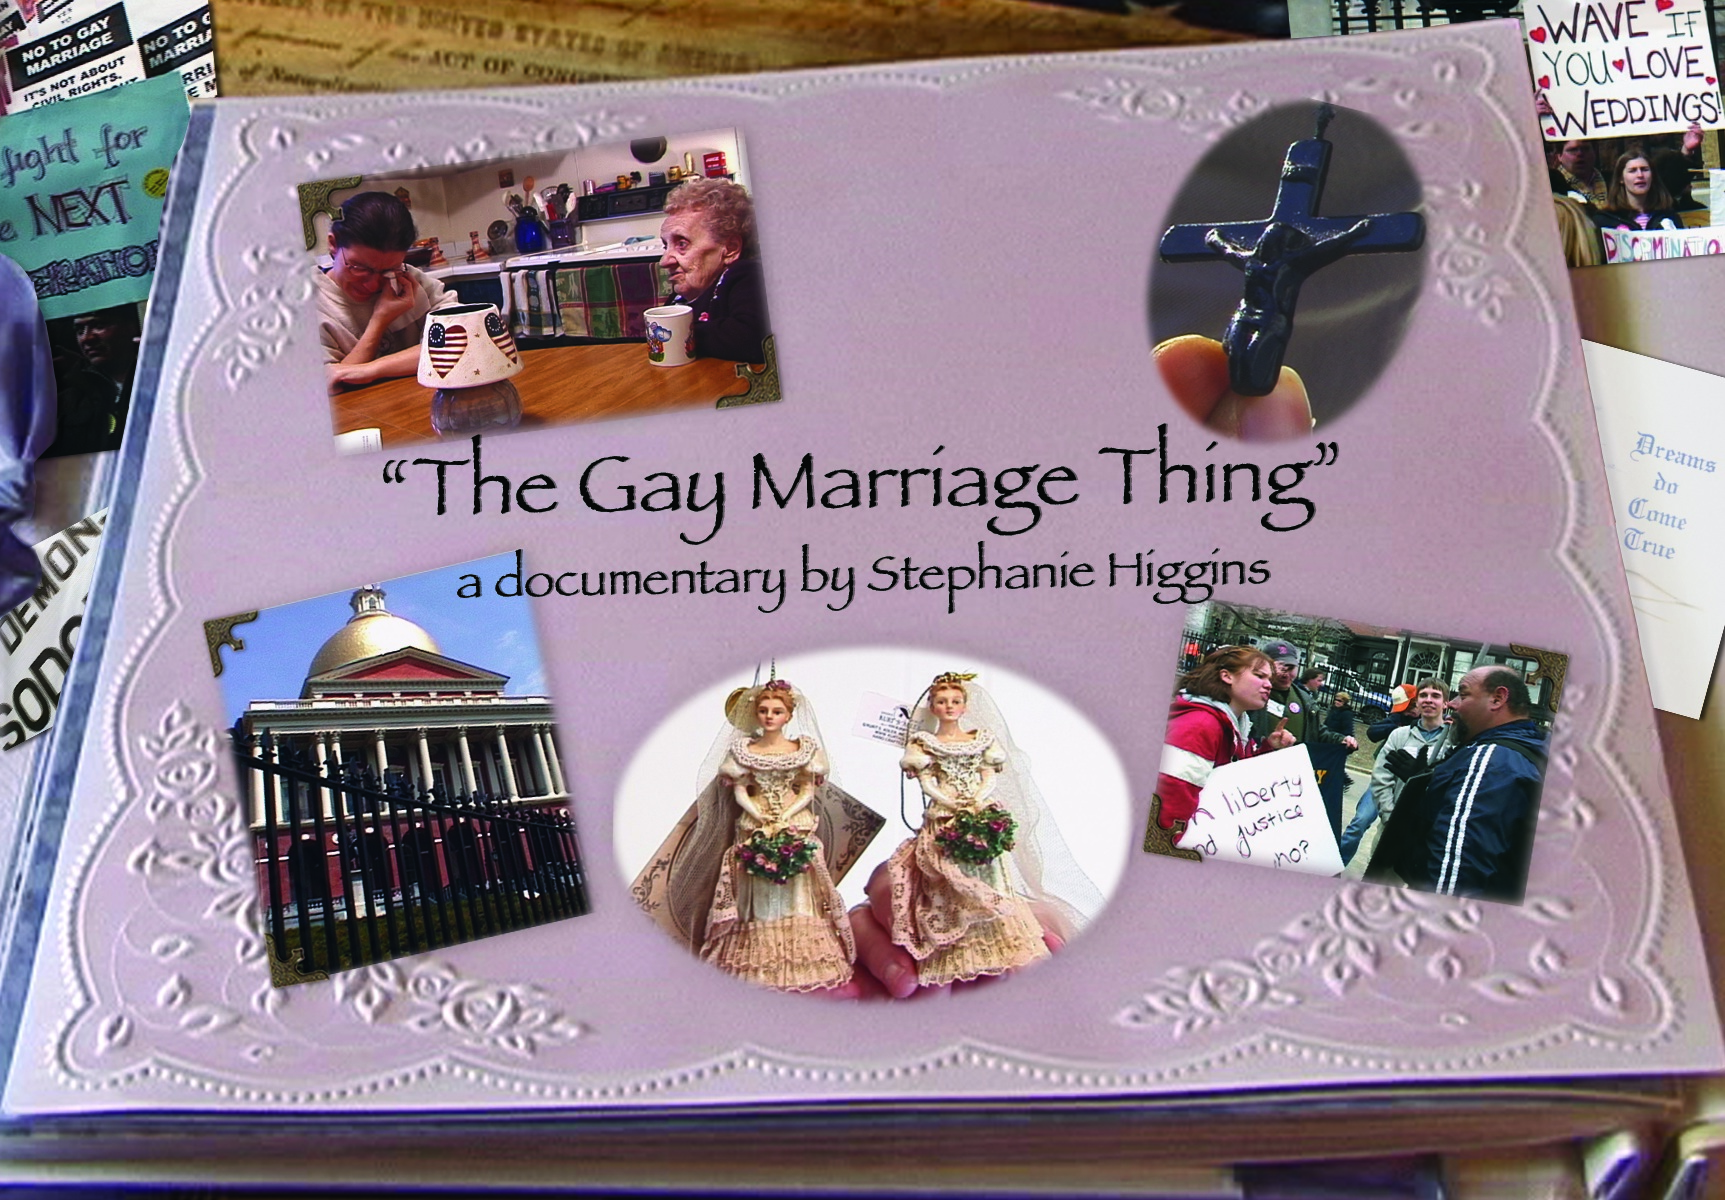 The Gay Marriage Thing